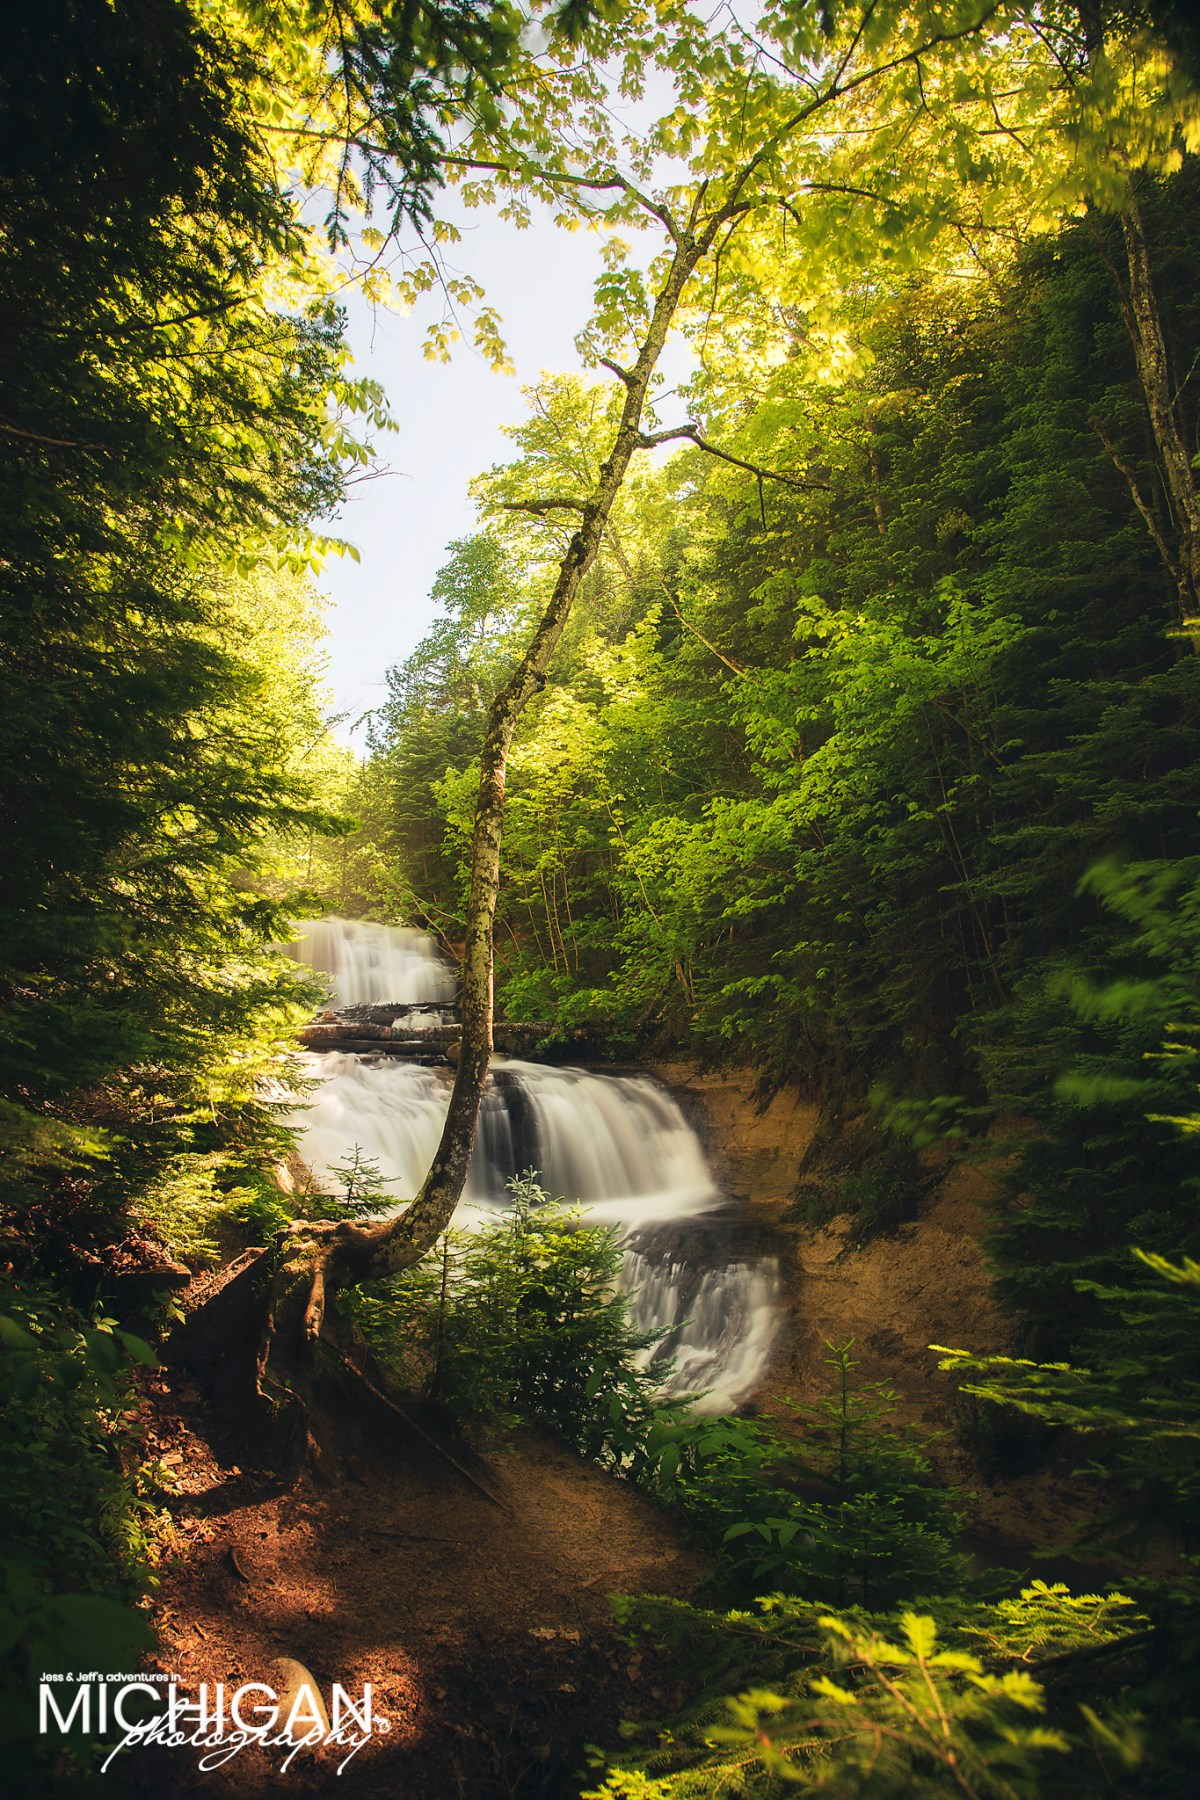 Sable Falls in the Pictured Rocks National Lakeshore near Grand Marais